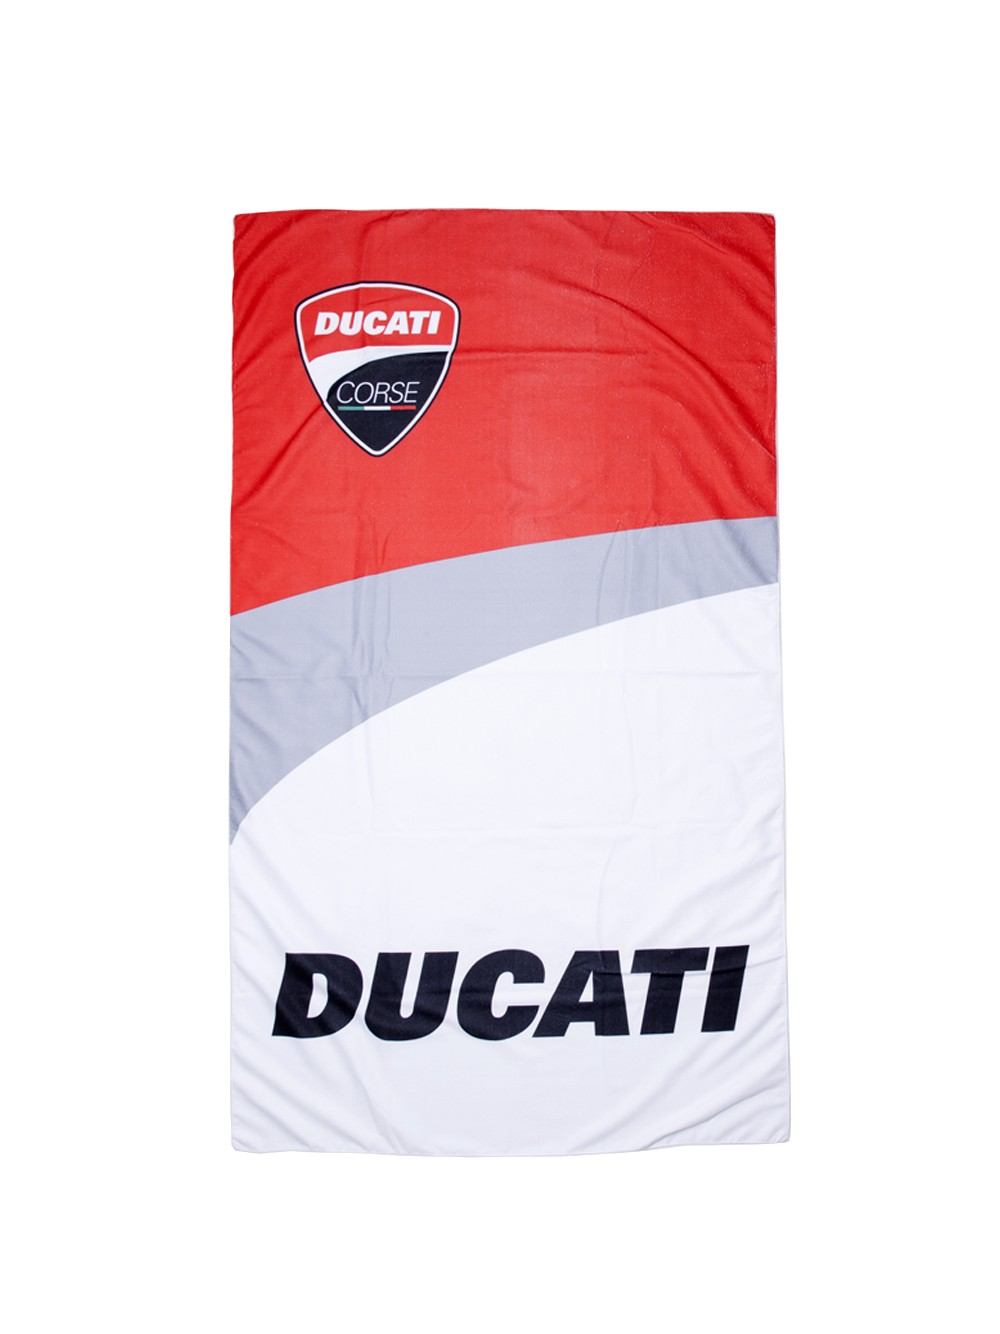 motogp apparel ducati corse ducati corse serviette. Black Bedroom Furniture Sets. Home Design Ideas